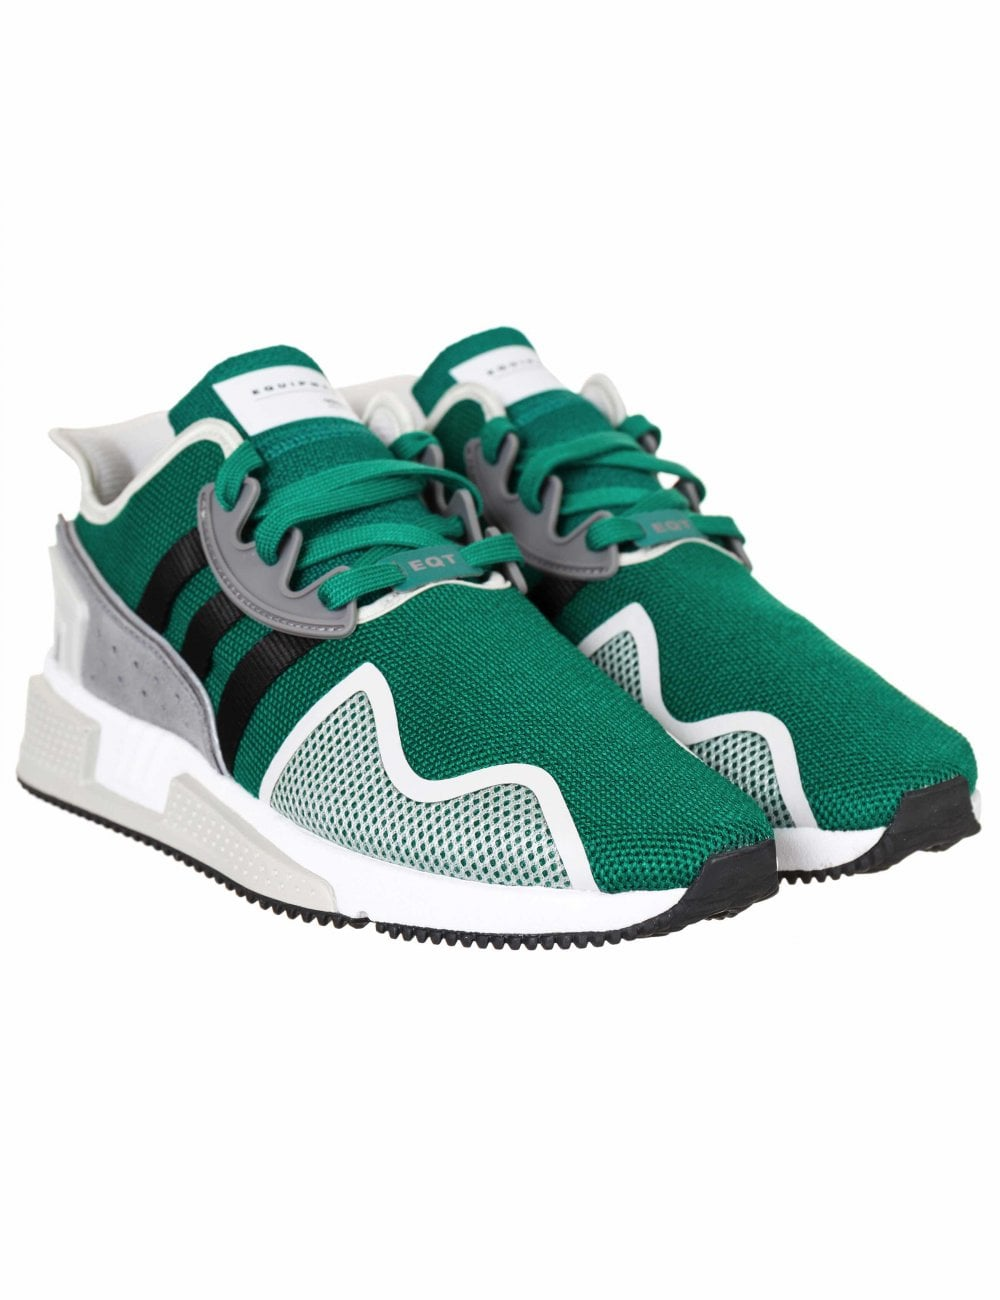 best service 7b533 ac006 EQT Cushion ADV Trainers - Sub Green/Core Black